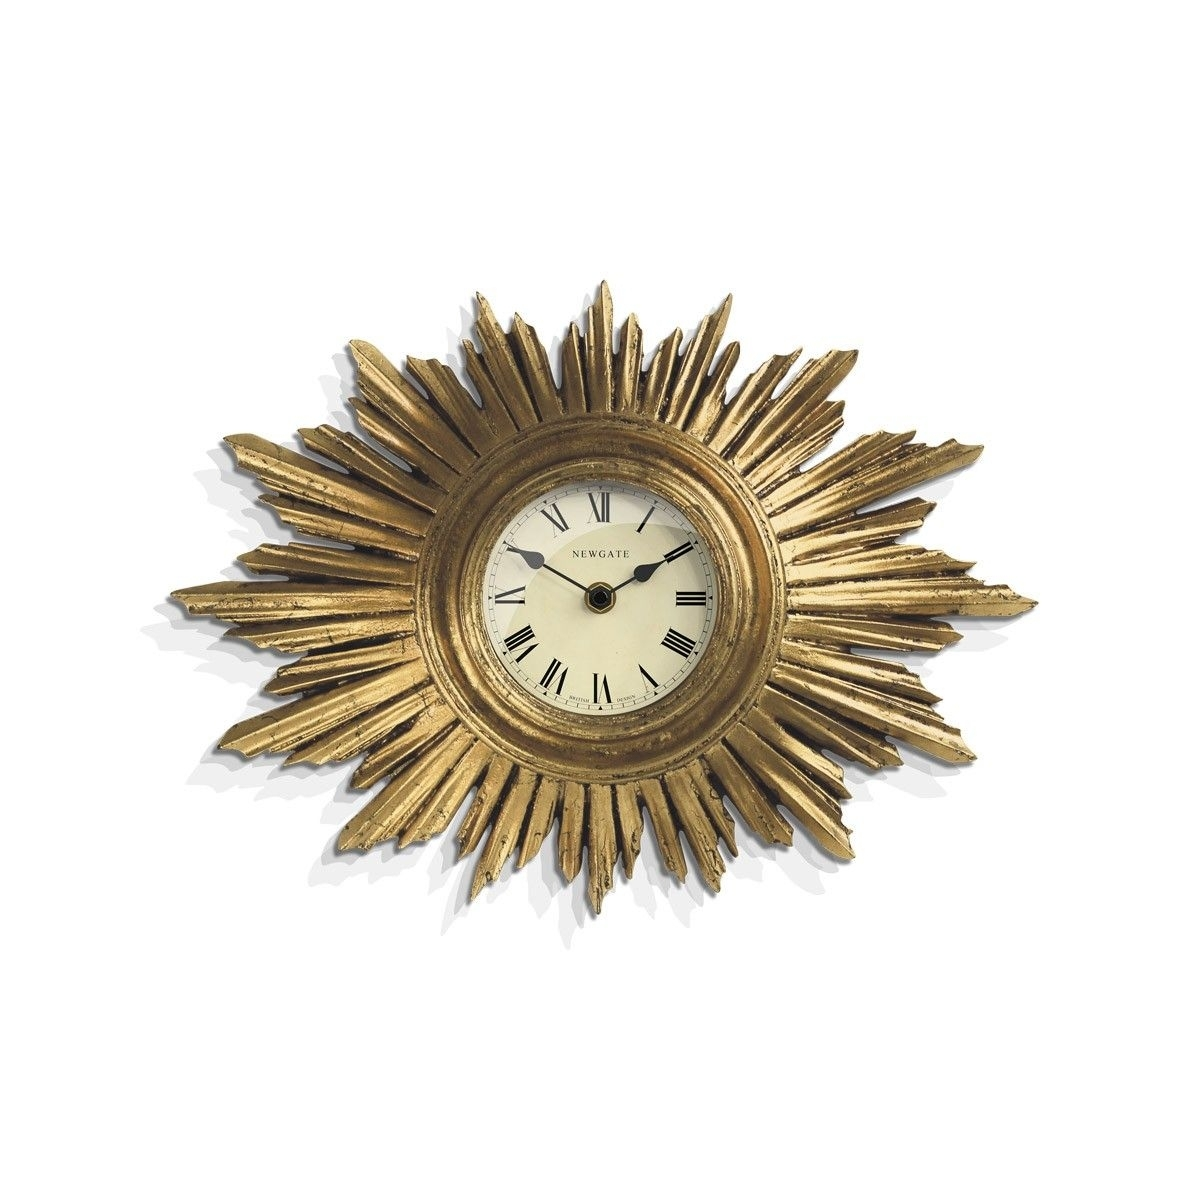 The Sunburst Wall Clock In Vintage Goldnewgate Clocks An Art Regarding Most Recent Art Deco Wall Clock (View 19 of 20)